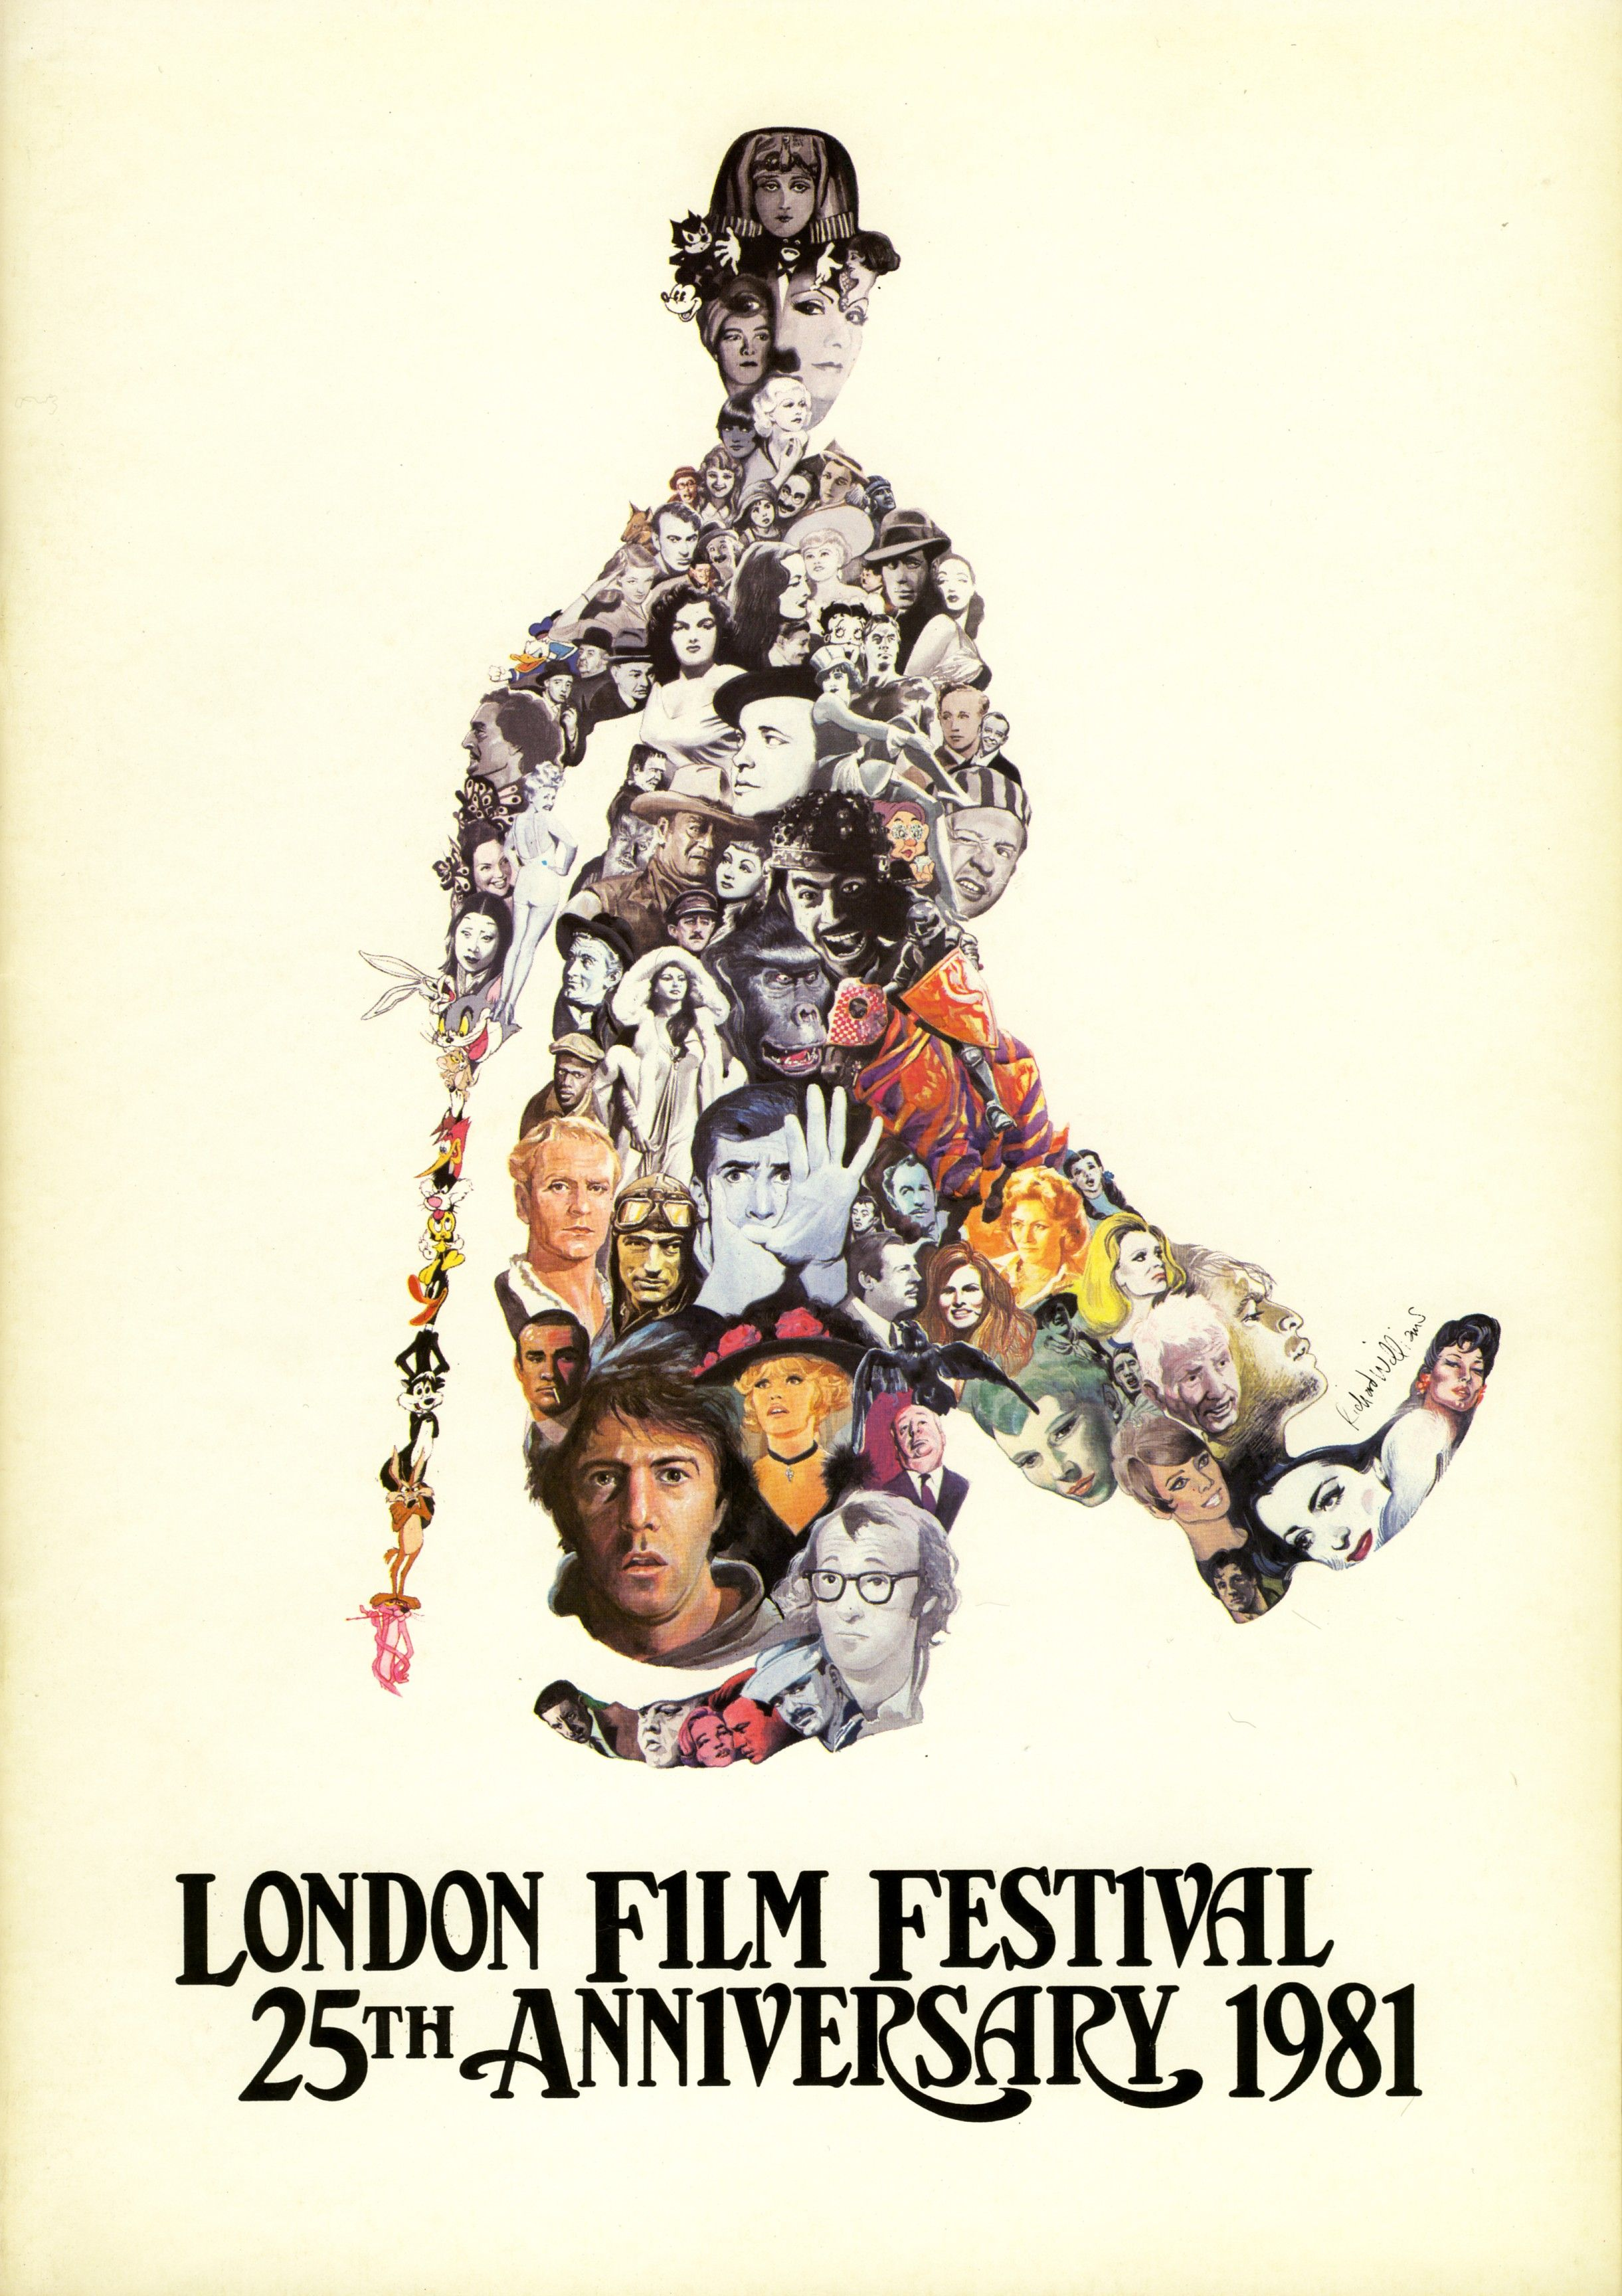 Poster design top 10 - Top 10 London Film Festival Posters Of All Time